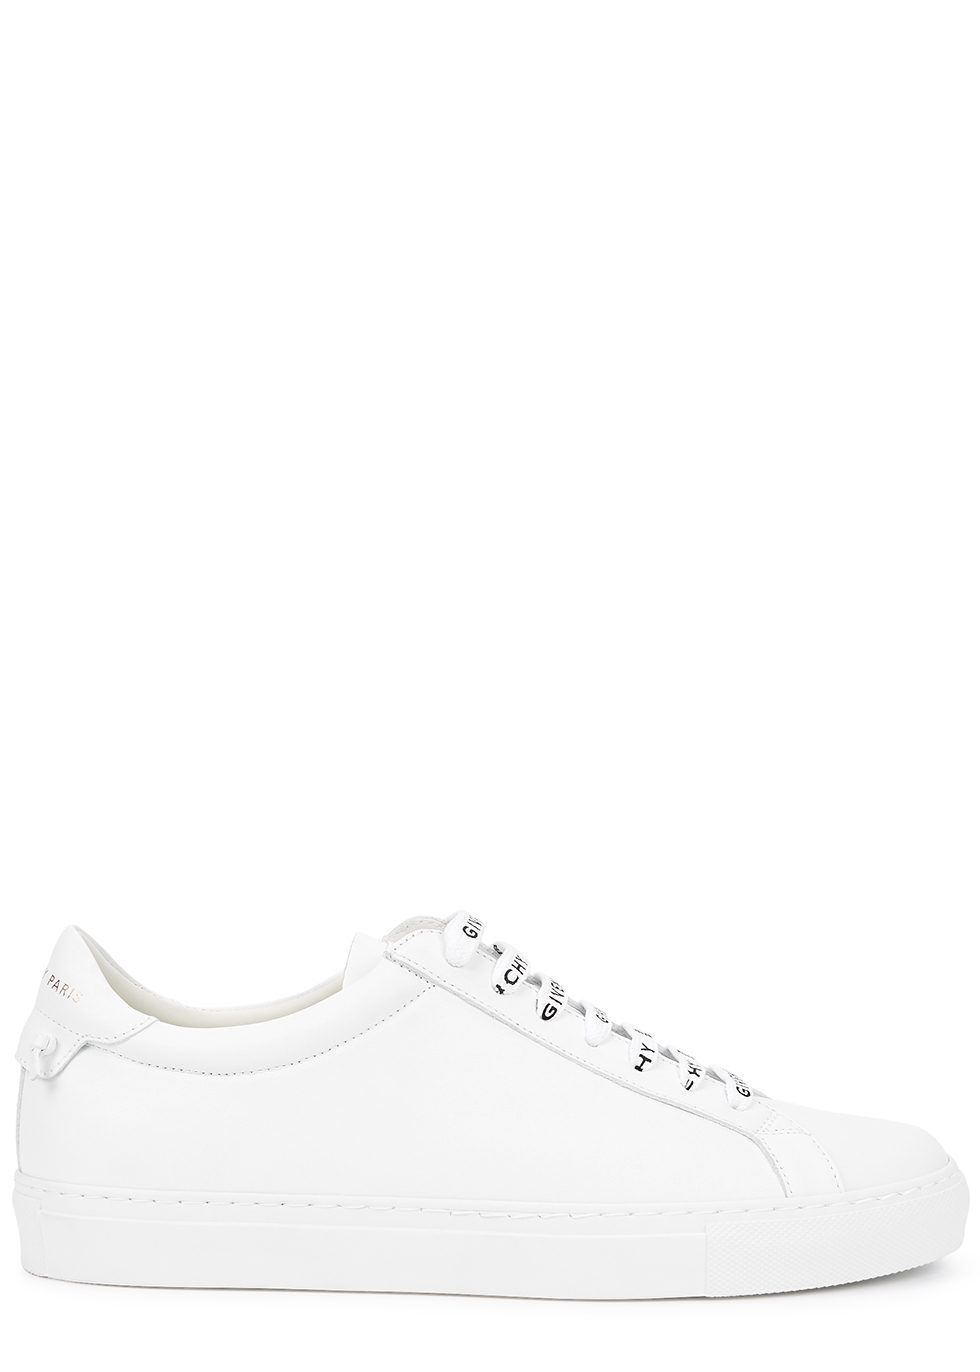 GIVENCHY 4G shoelace sneakers in